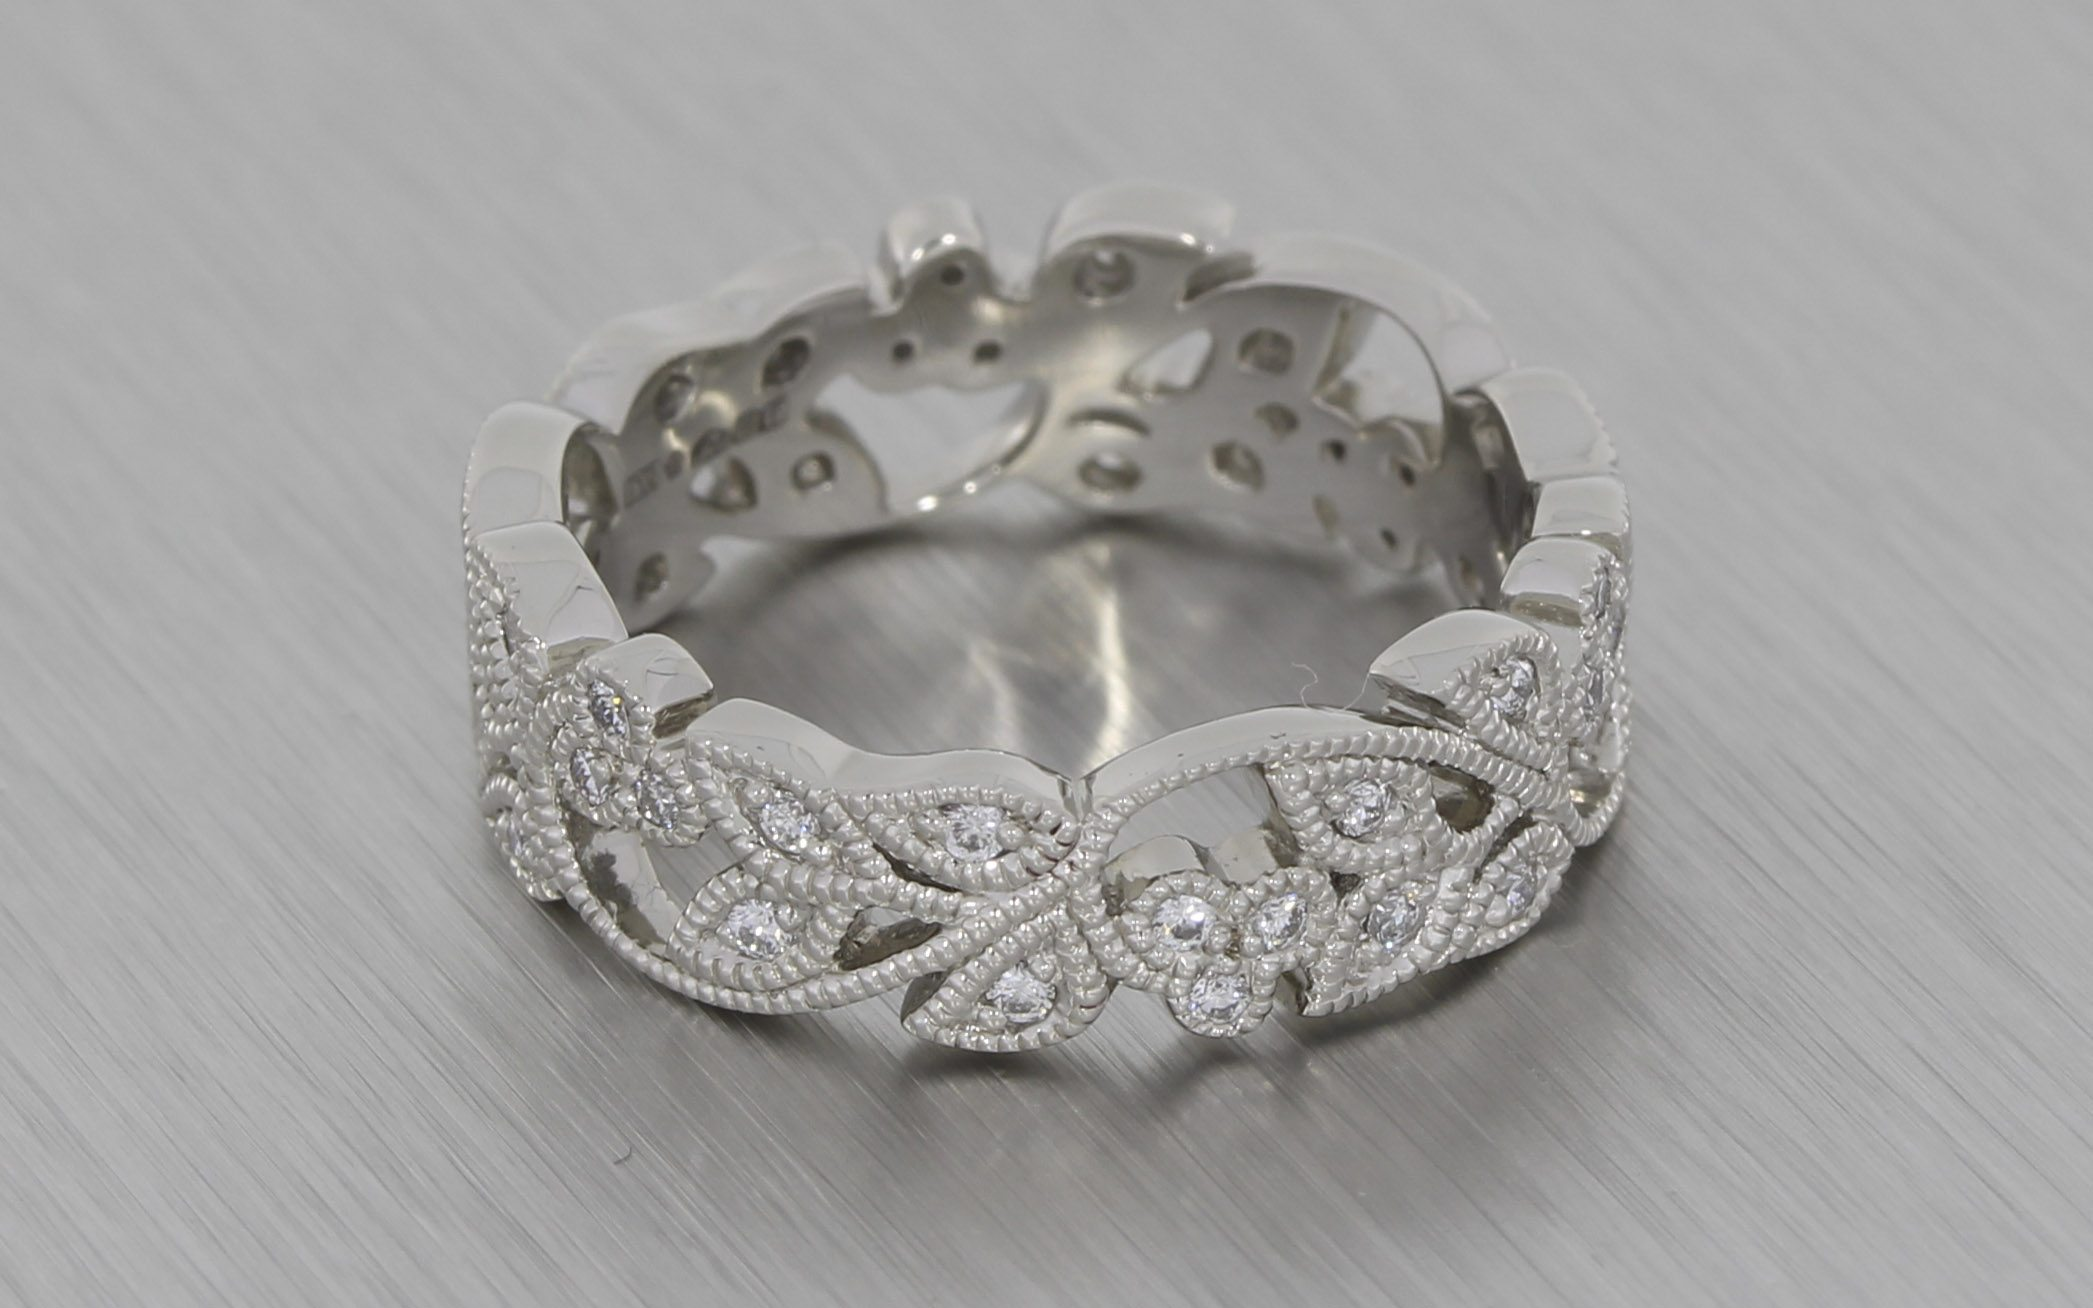 Stunning Vintage FloralStyle Platinum Wedding Band with Milgrain